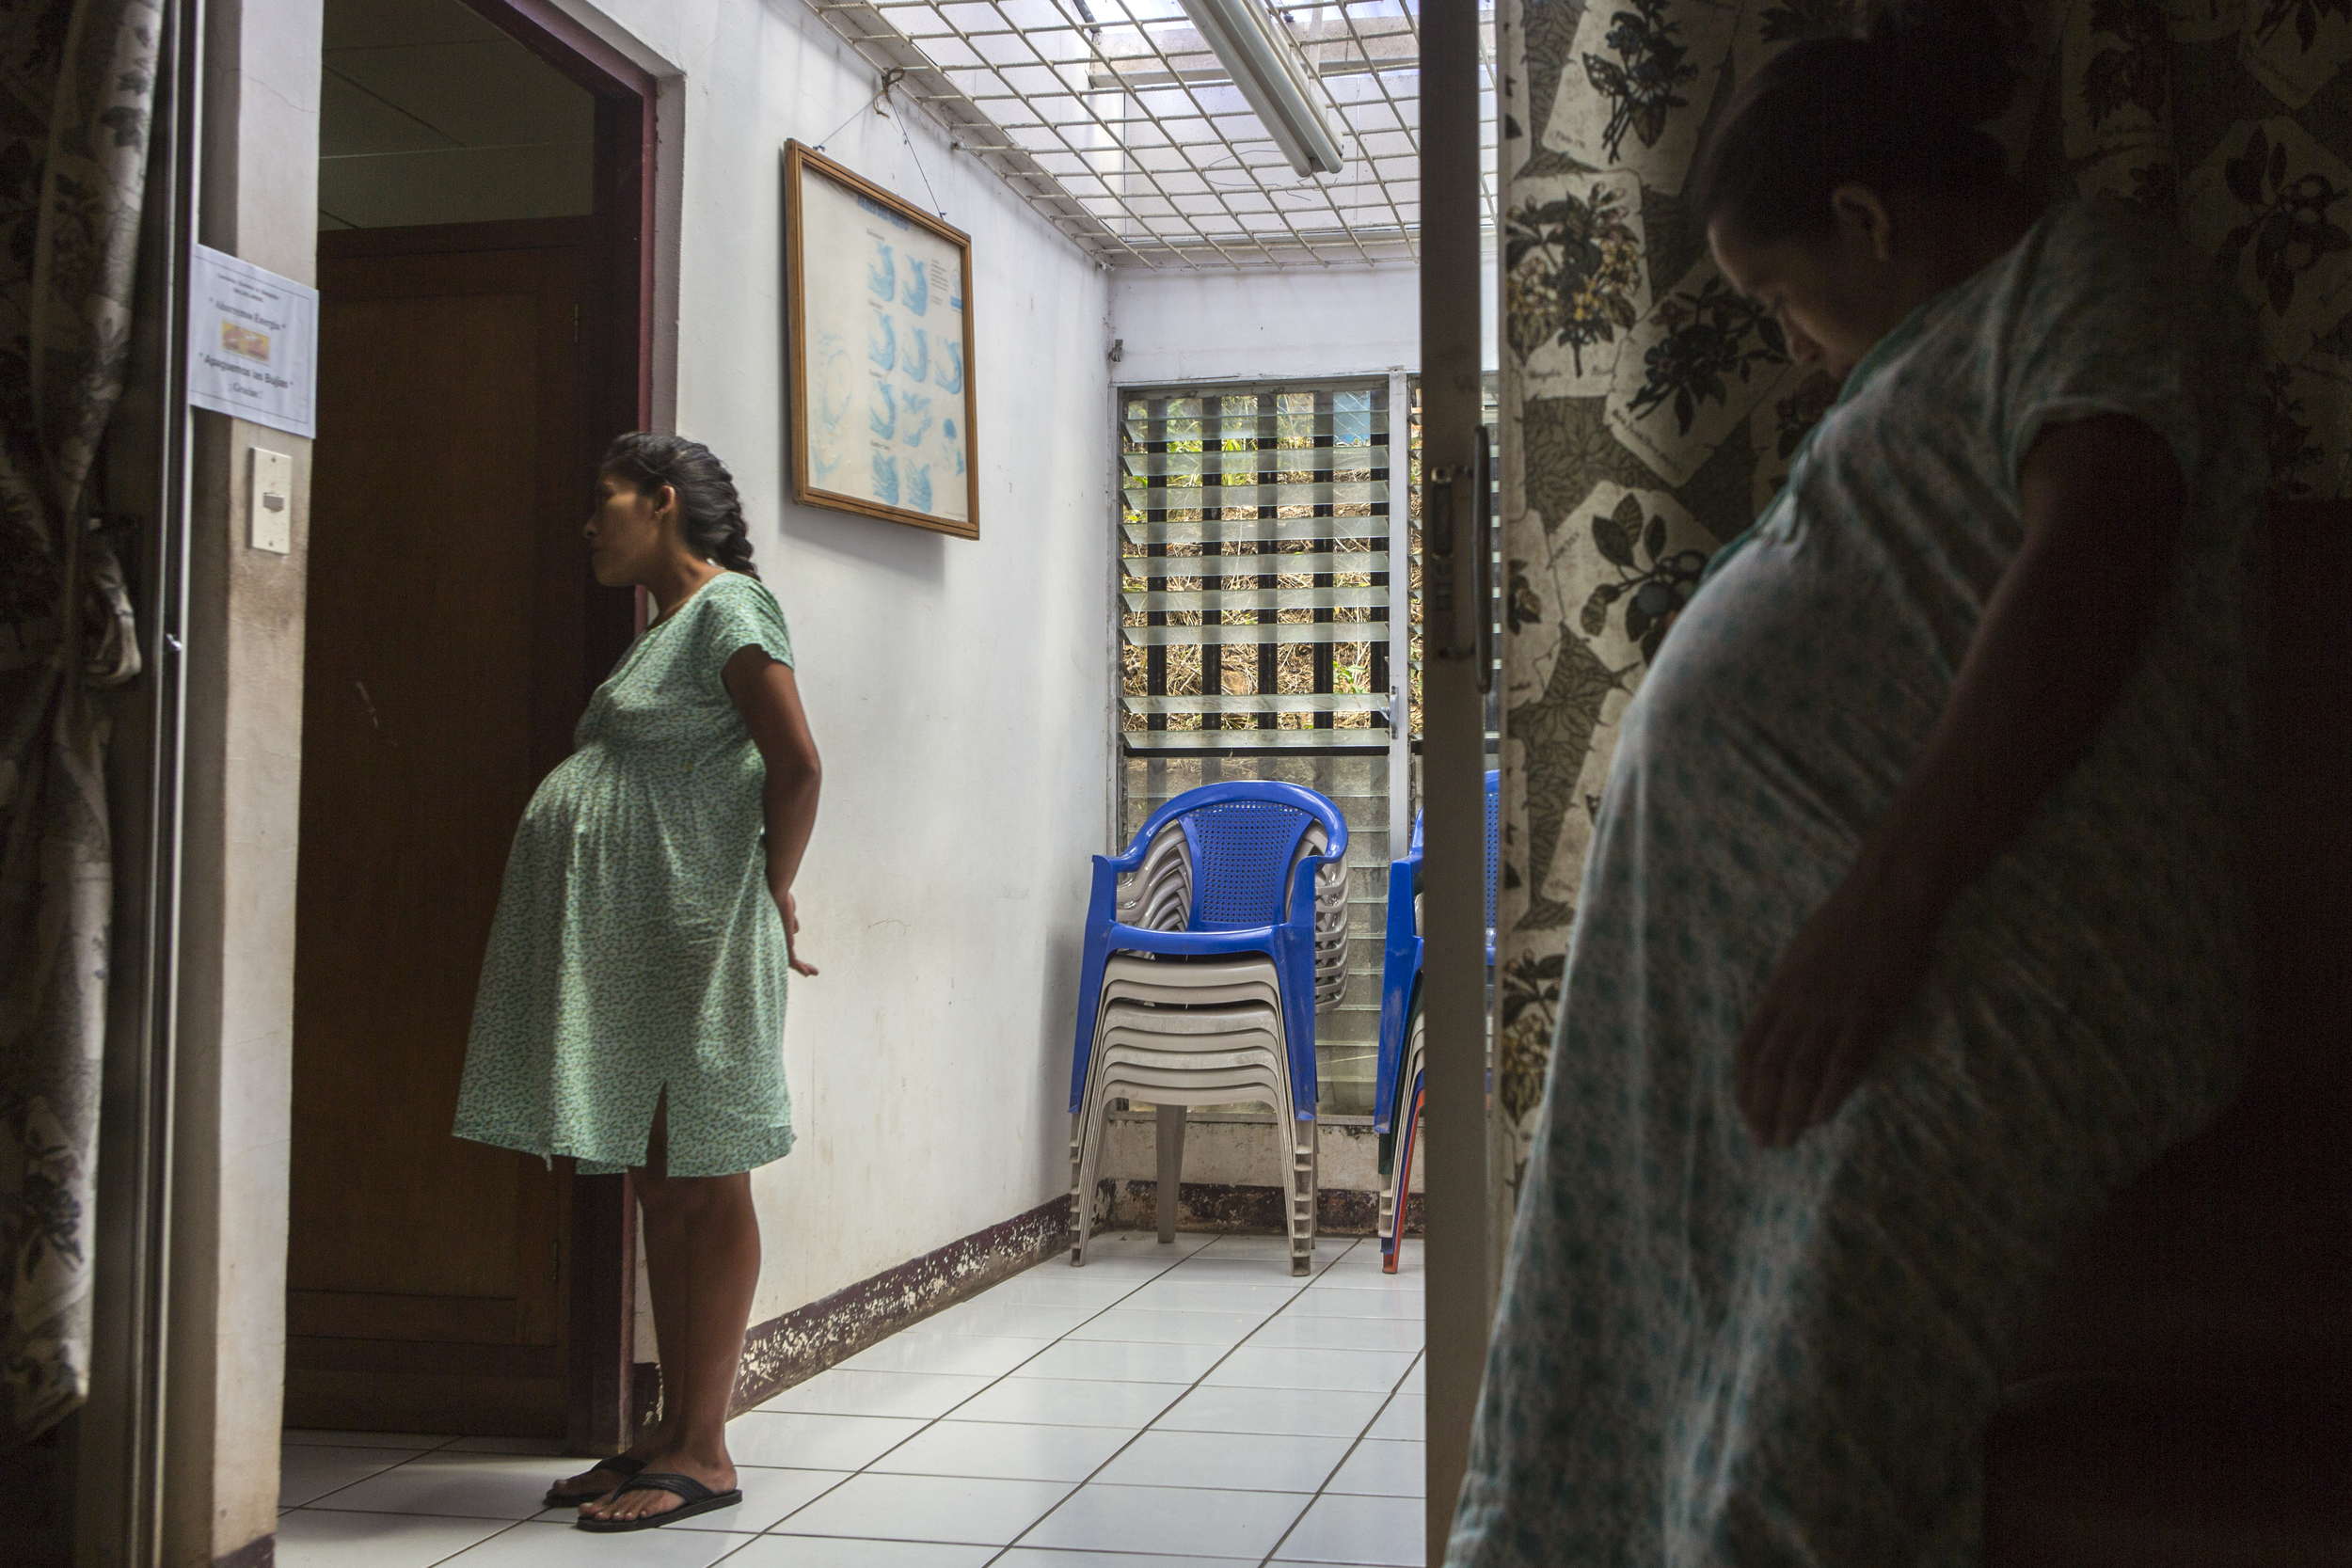 Meyling Rico, 15, waits outside the checkup office to receive her daily medical check up. According to the Guttmacher Institute, approximately half of young women in Nicaragua give birth before they reach the age of 20. In accordance with this, some of the children of women who came to the maternity home in 1991 are now here themselves expecting a child.